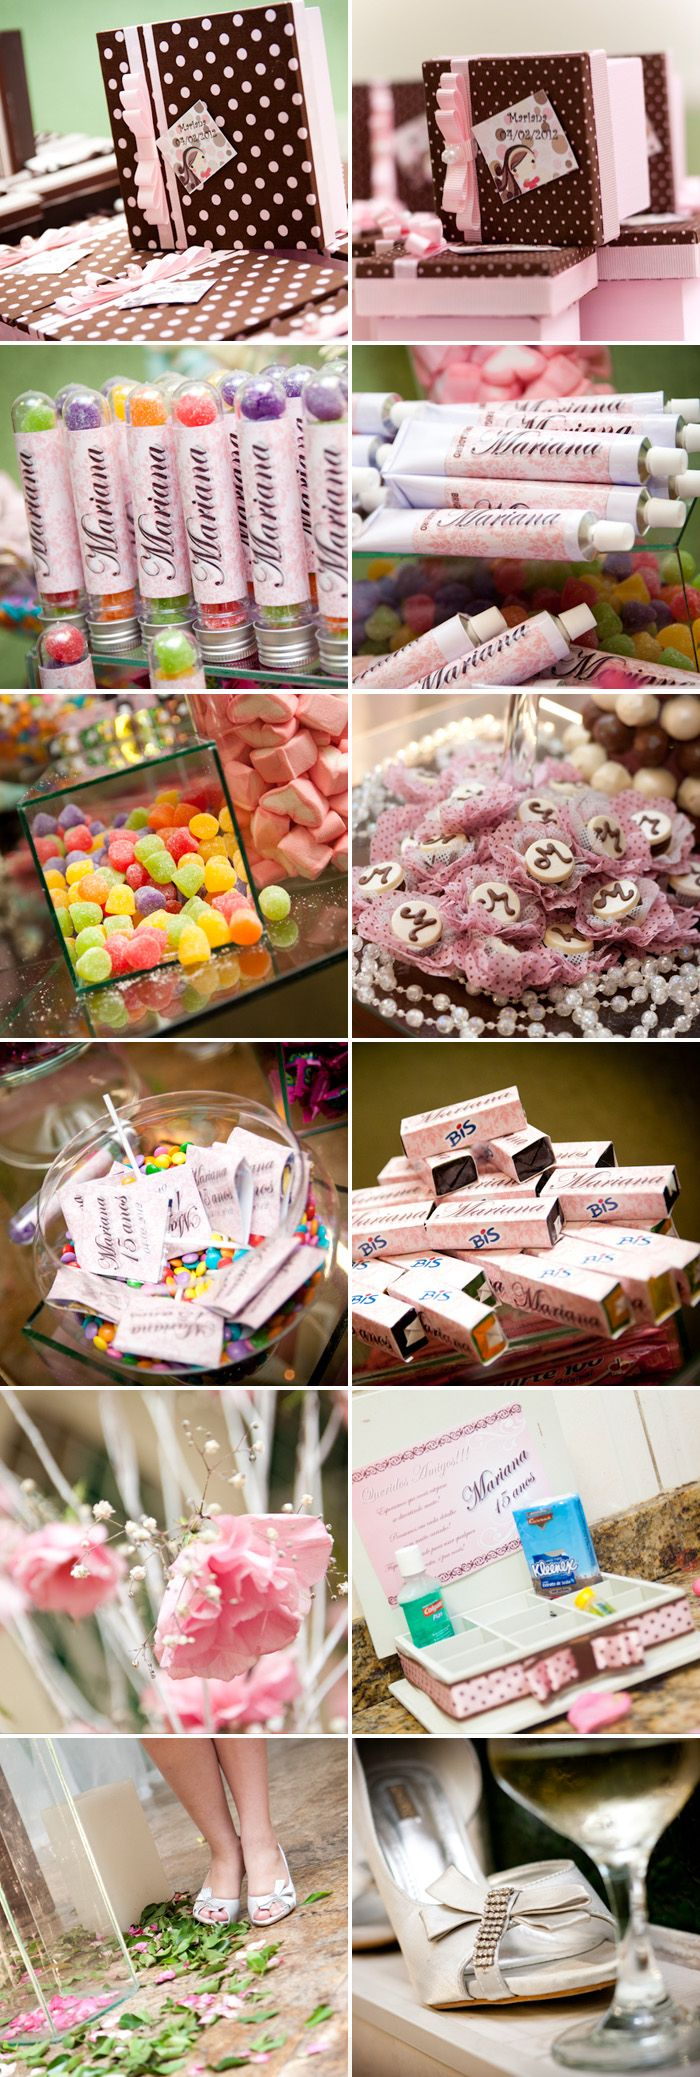 party ideas, ideas,party,photography,photographer,15 years old,candies,photo collage,templates